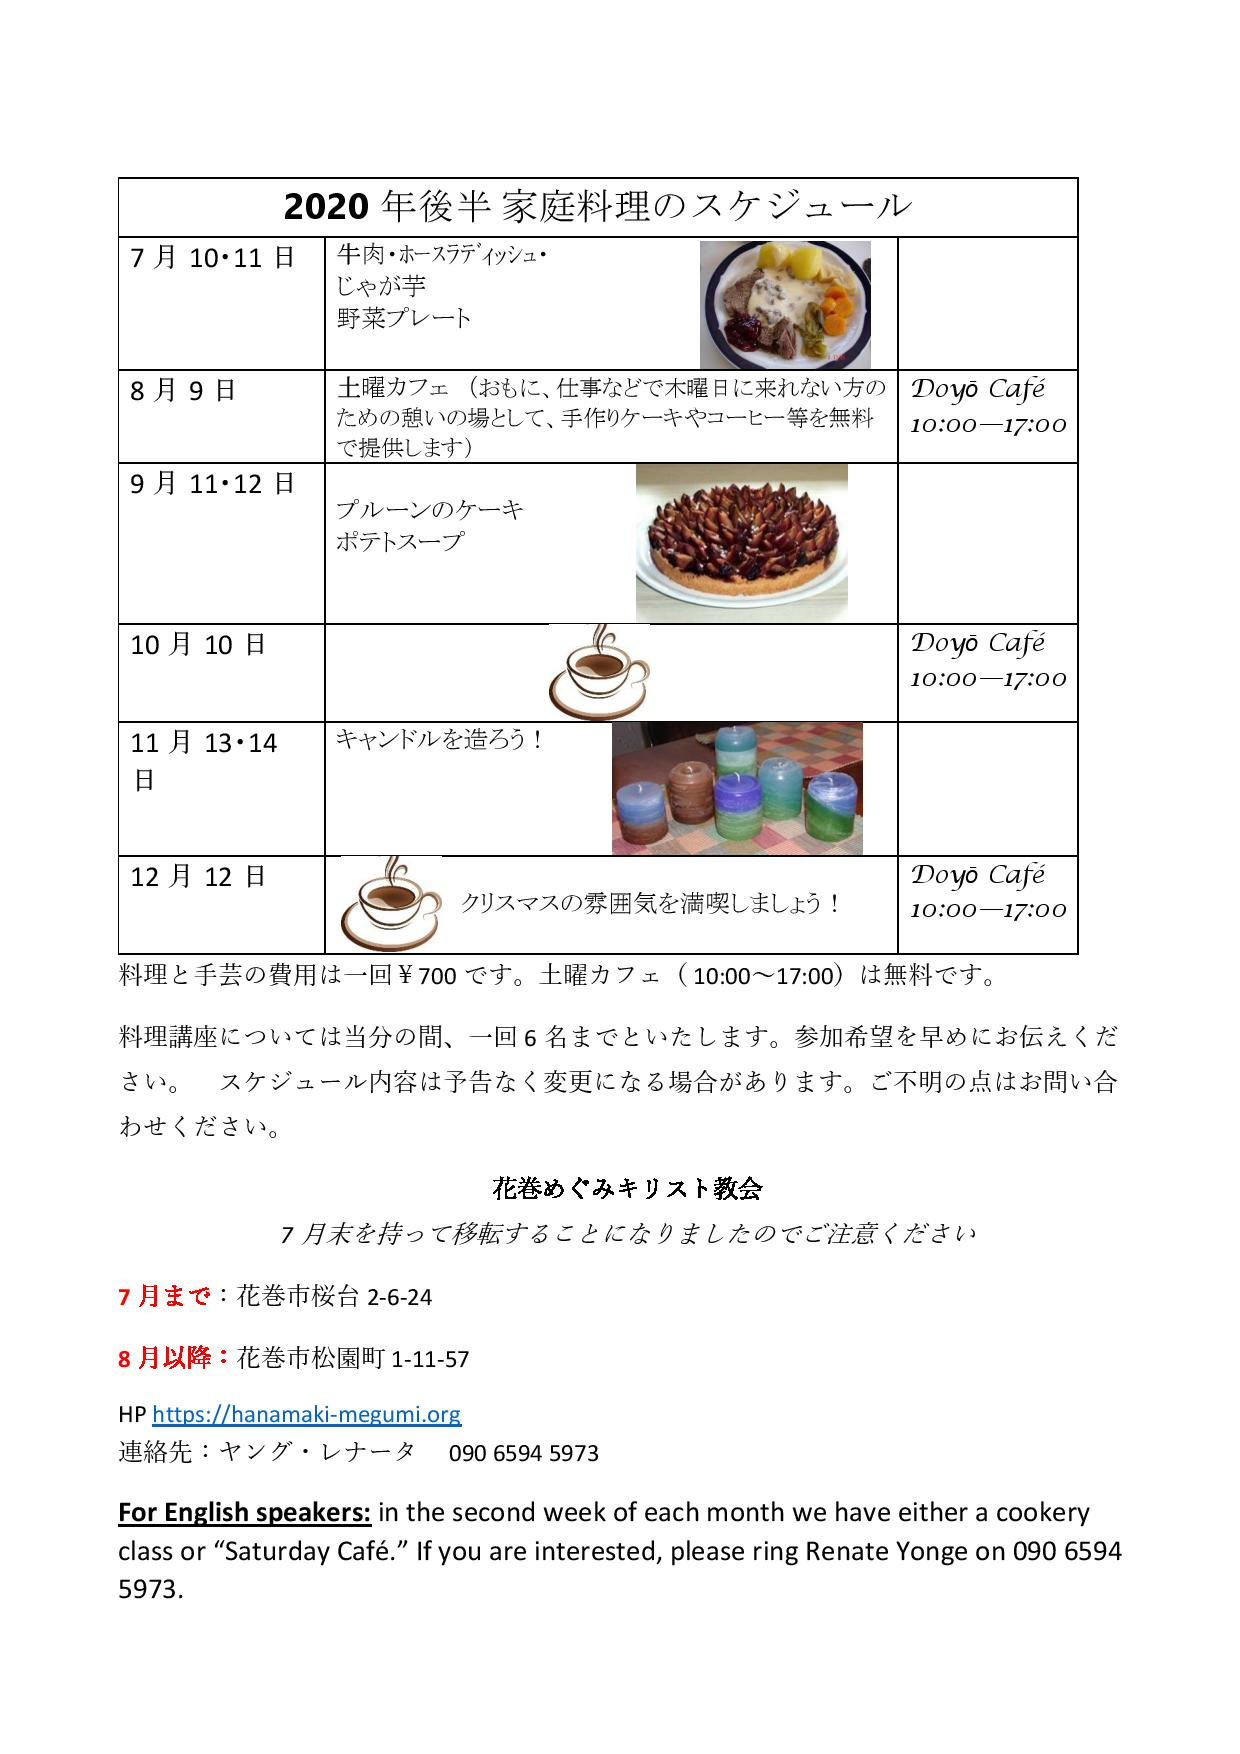 Cookery Schedule 2020, June update-page-001